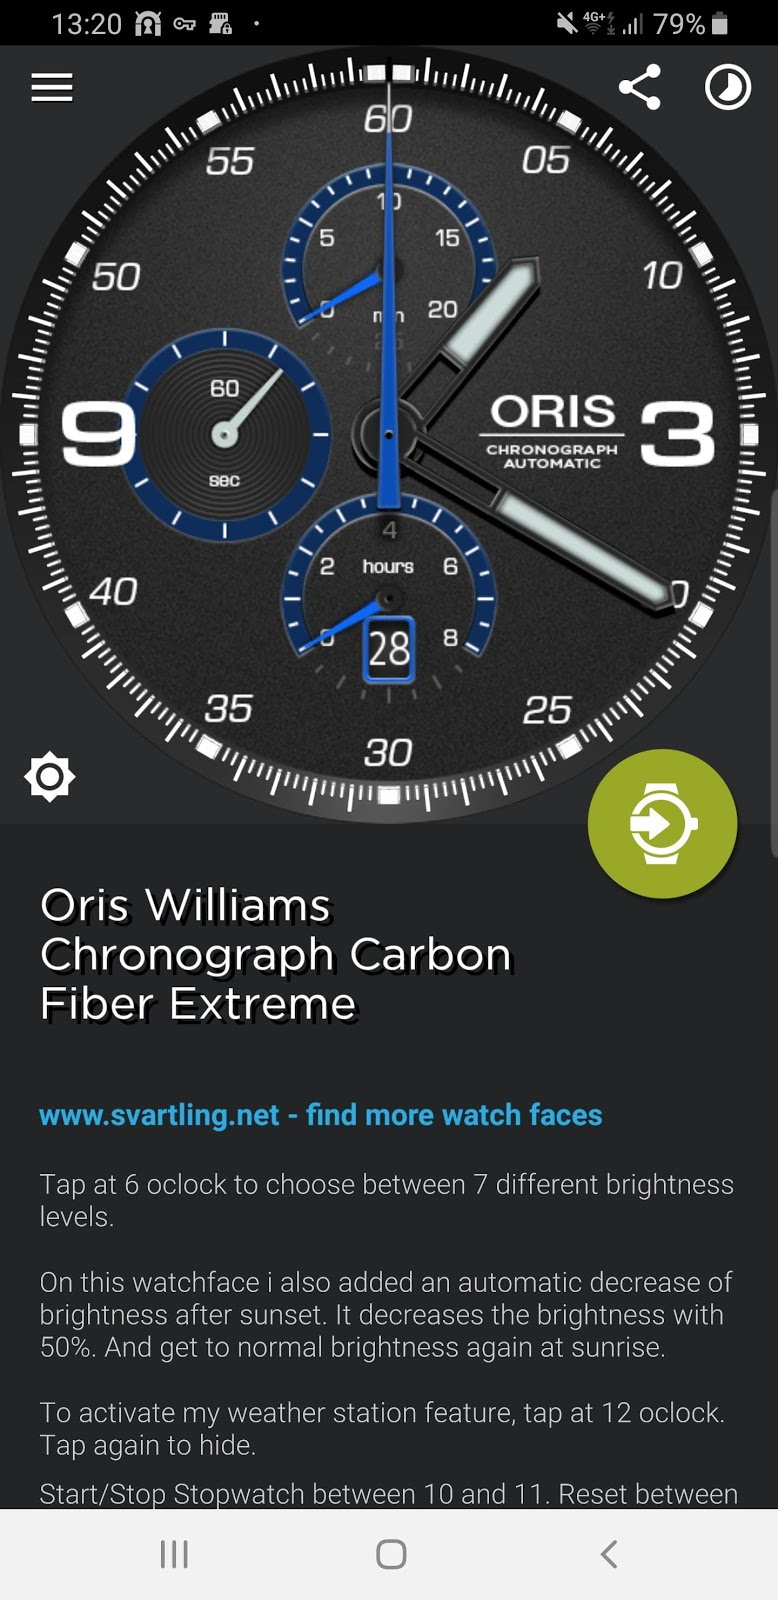 My Oris Williams Chronograph Carbon Fibre Extreme Watch Face